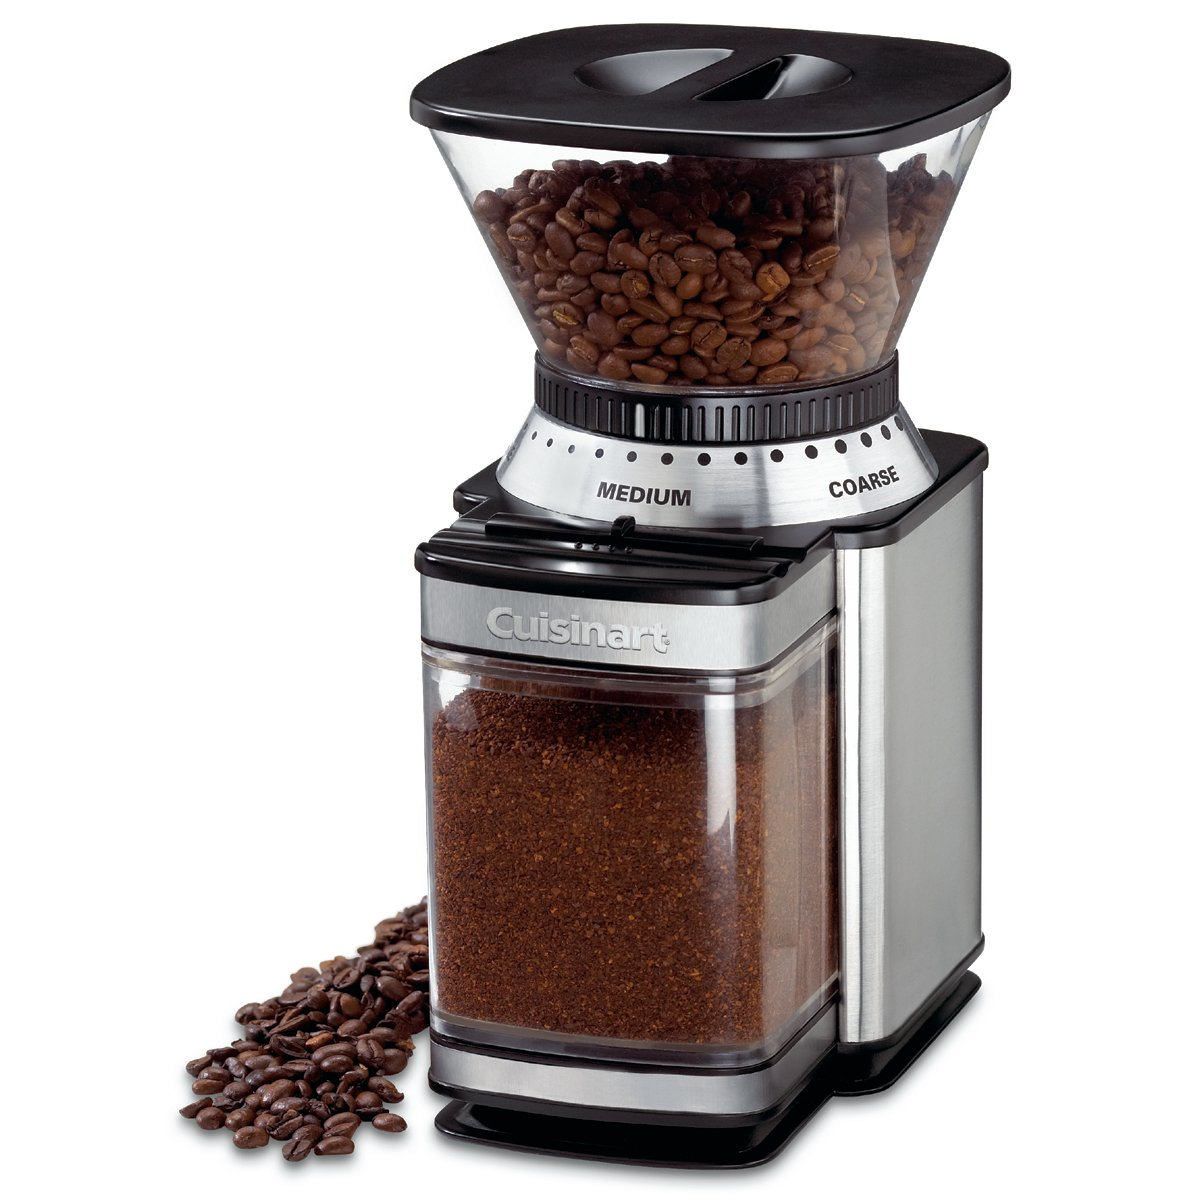 Top 10 Best Coffee Grinders